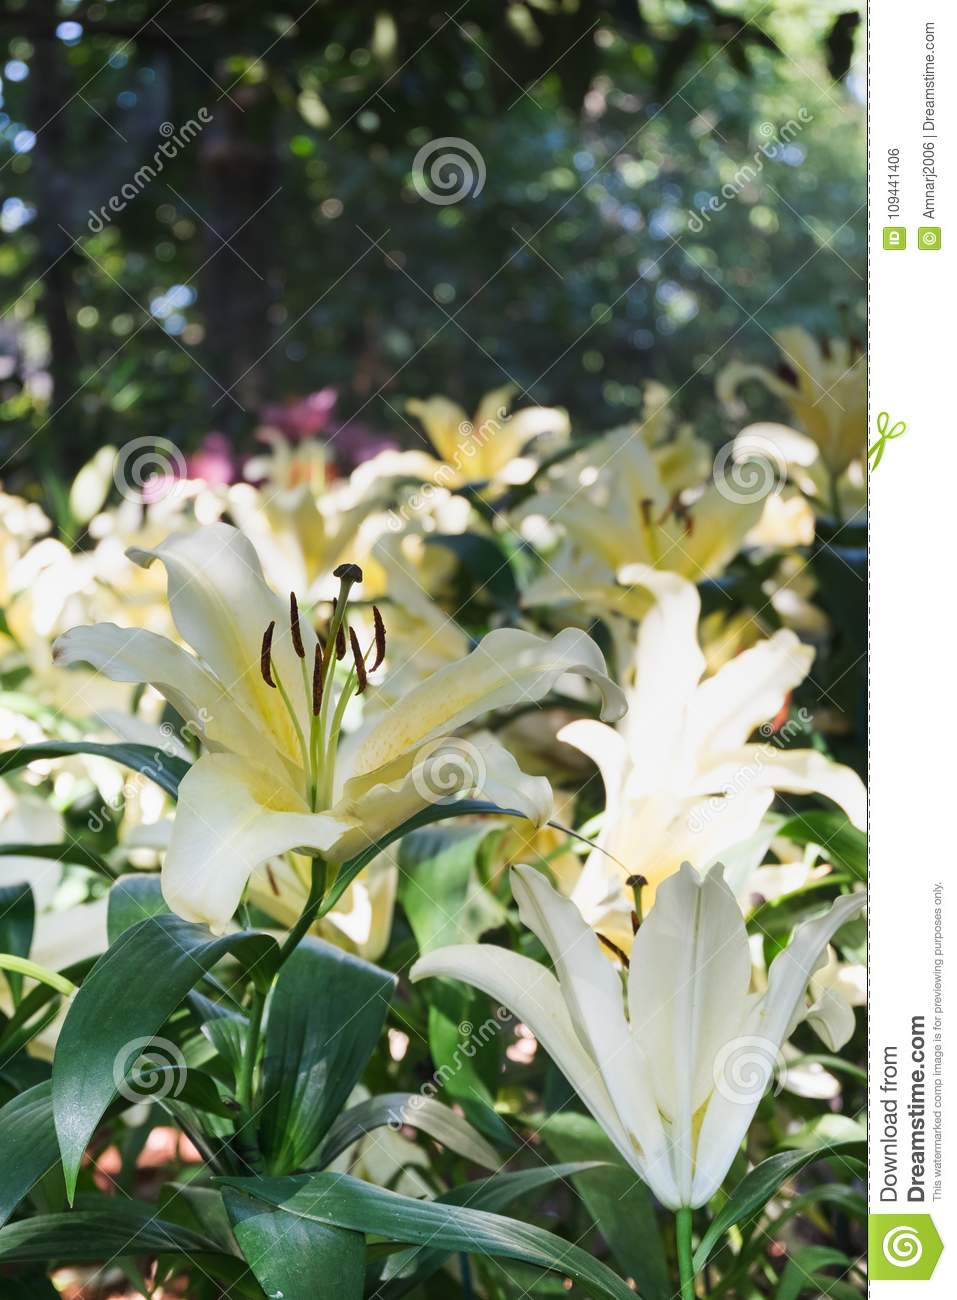 Beautiful White Lily Flower In Botanic Garden Stock Photo Image Of